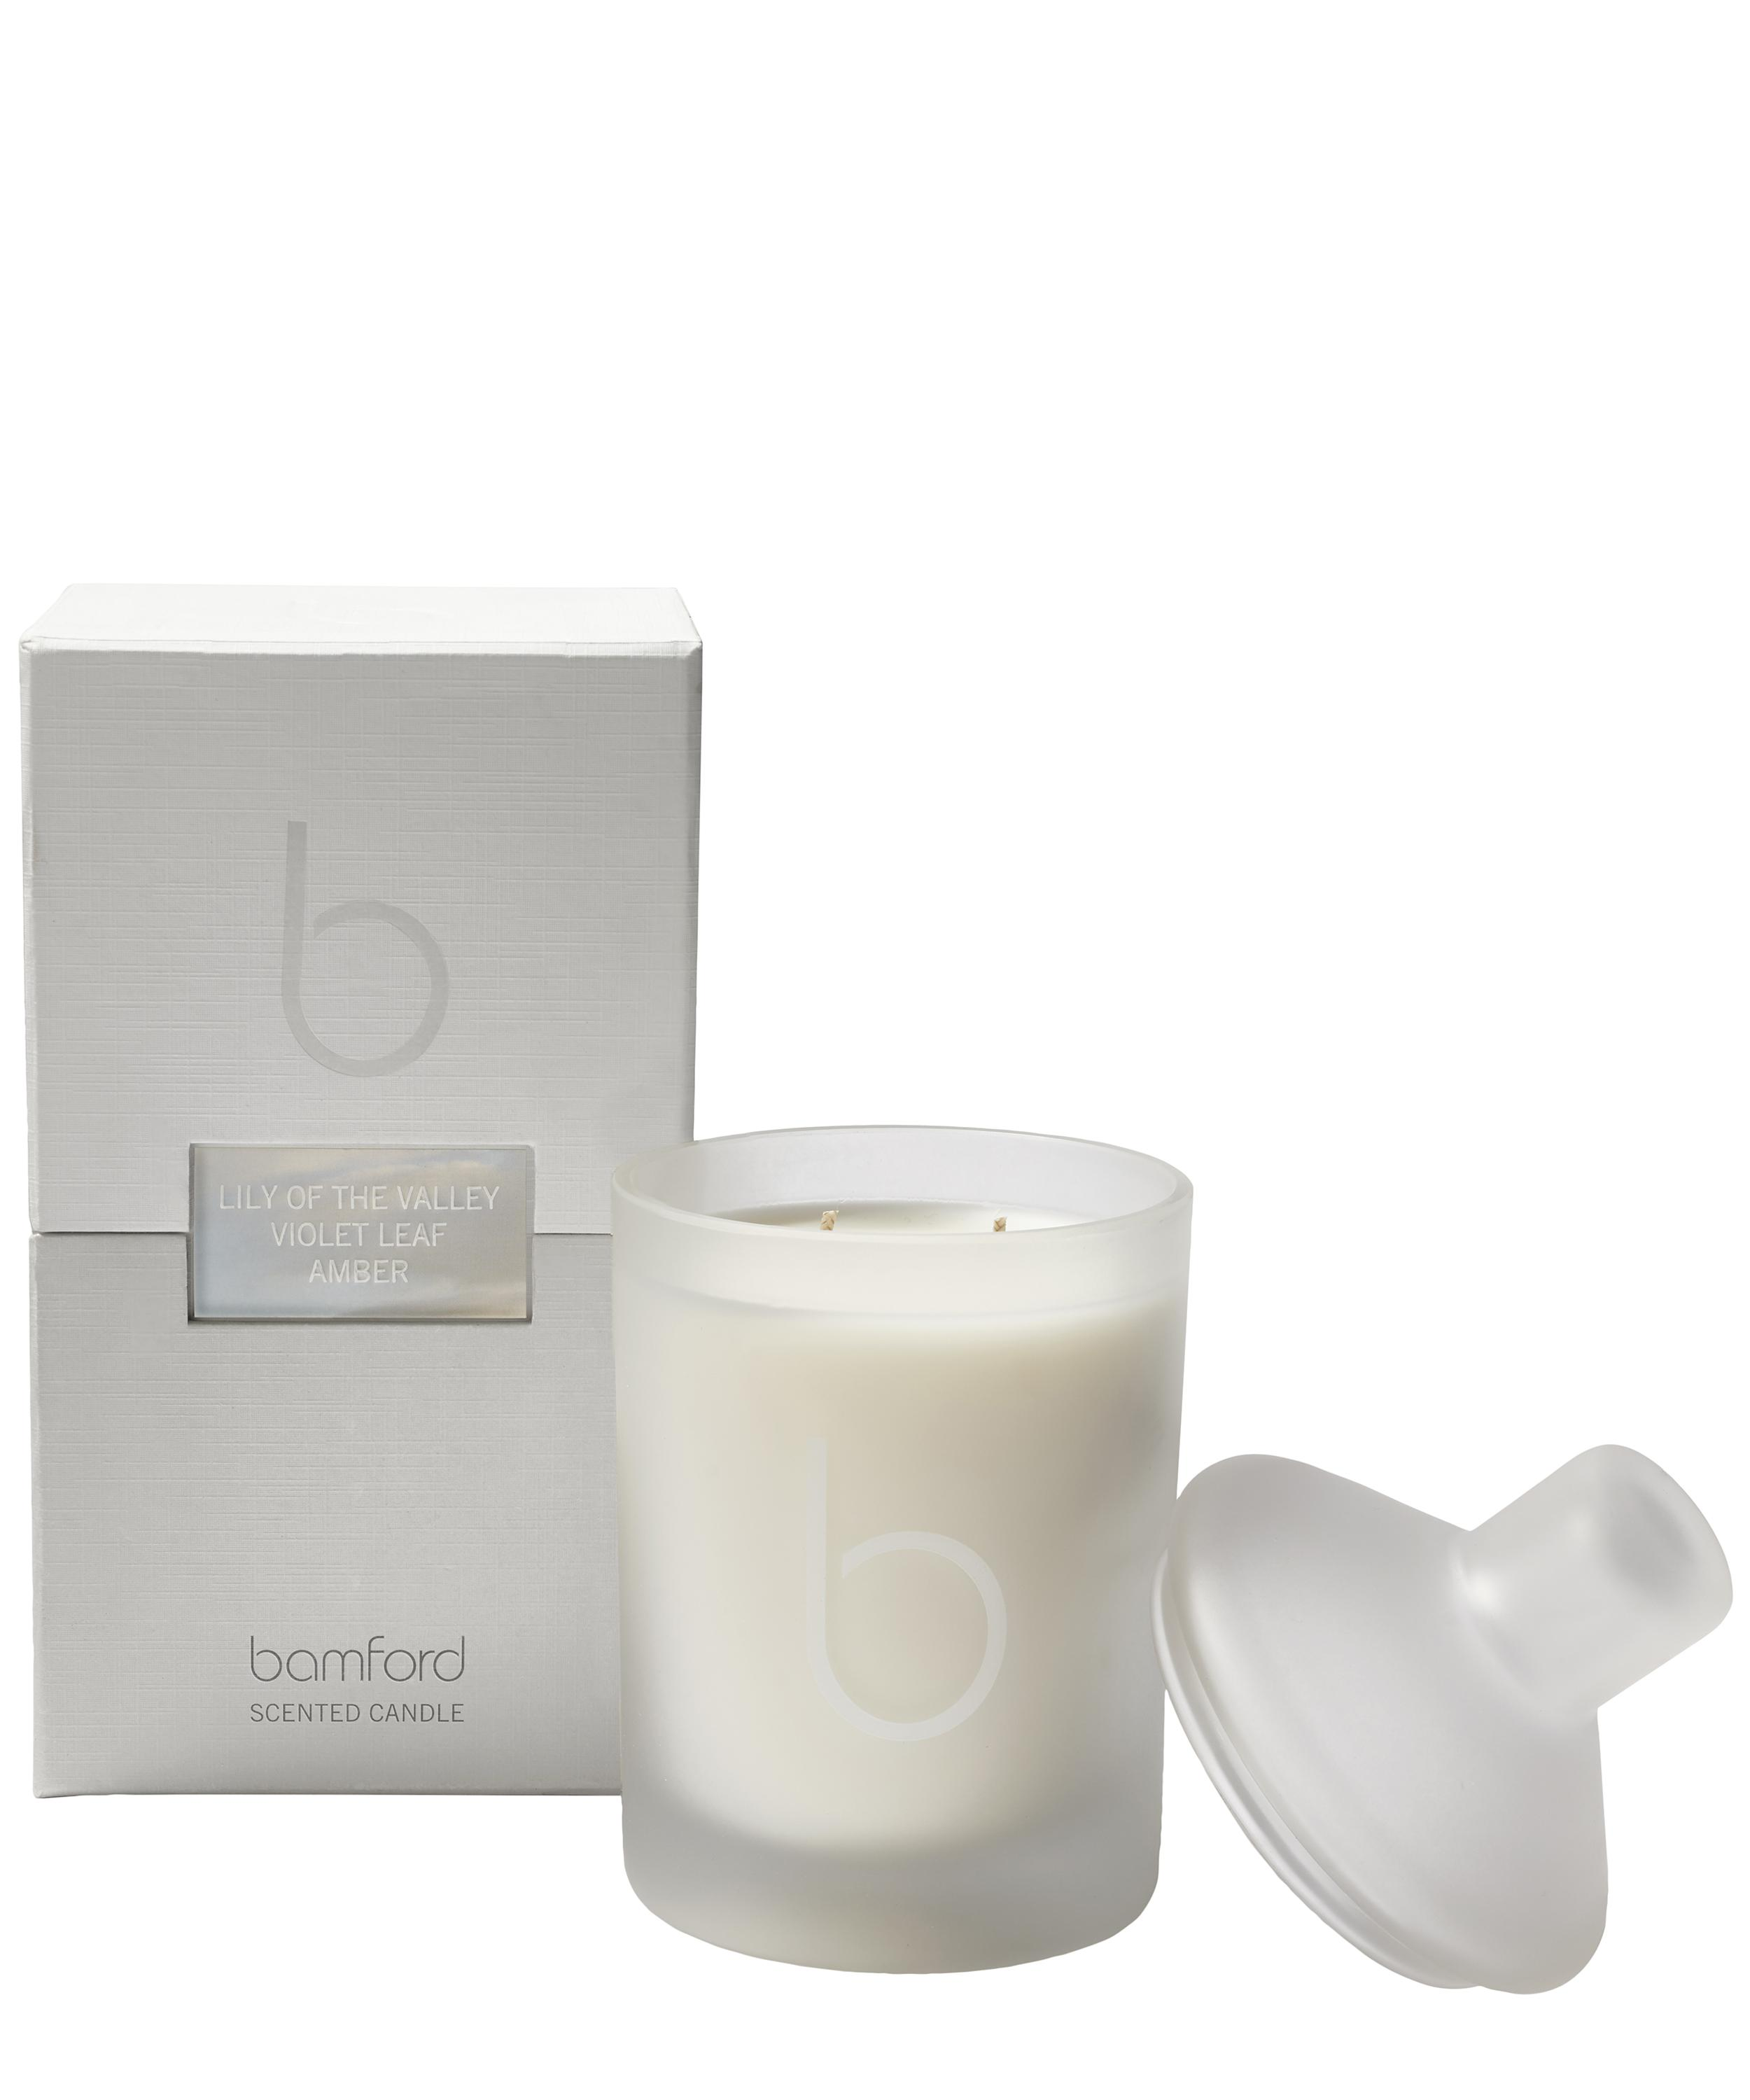 lily of the valley double wick candle 300g liberty london